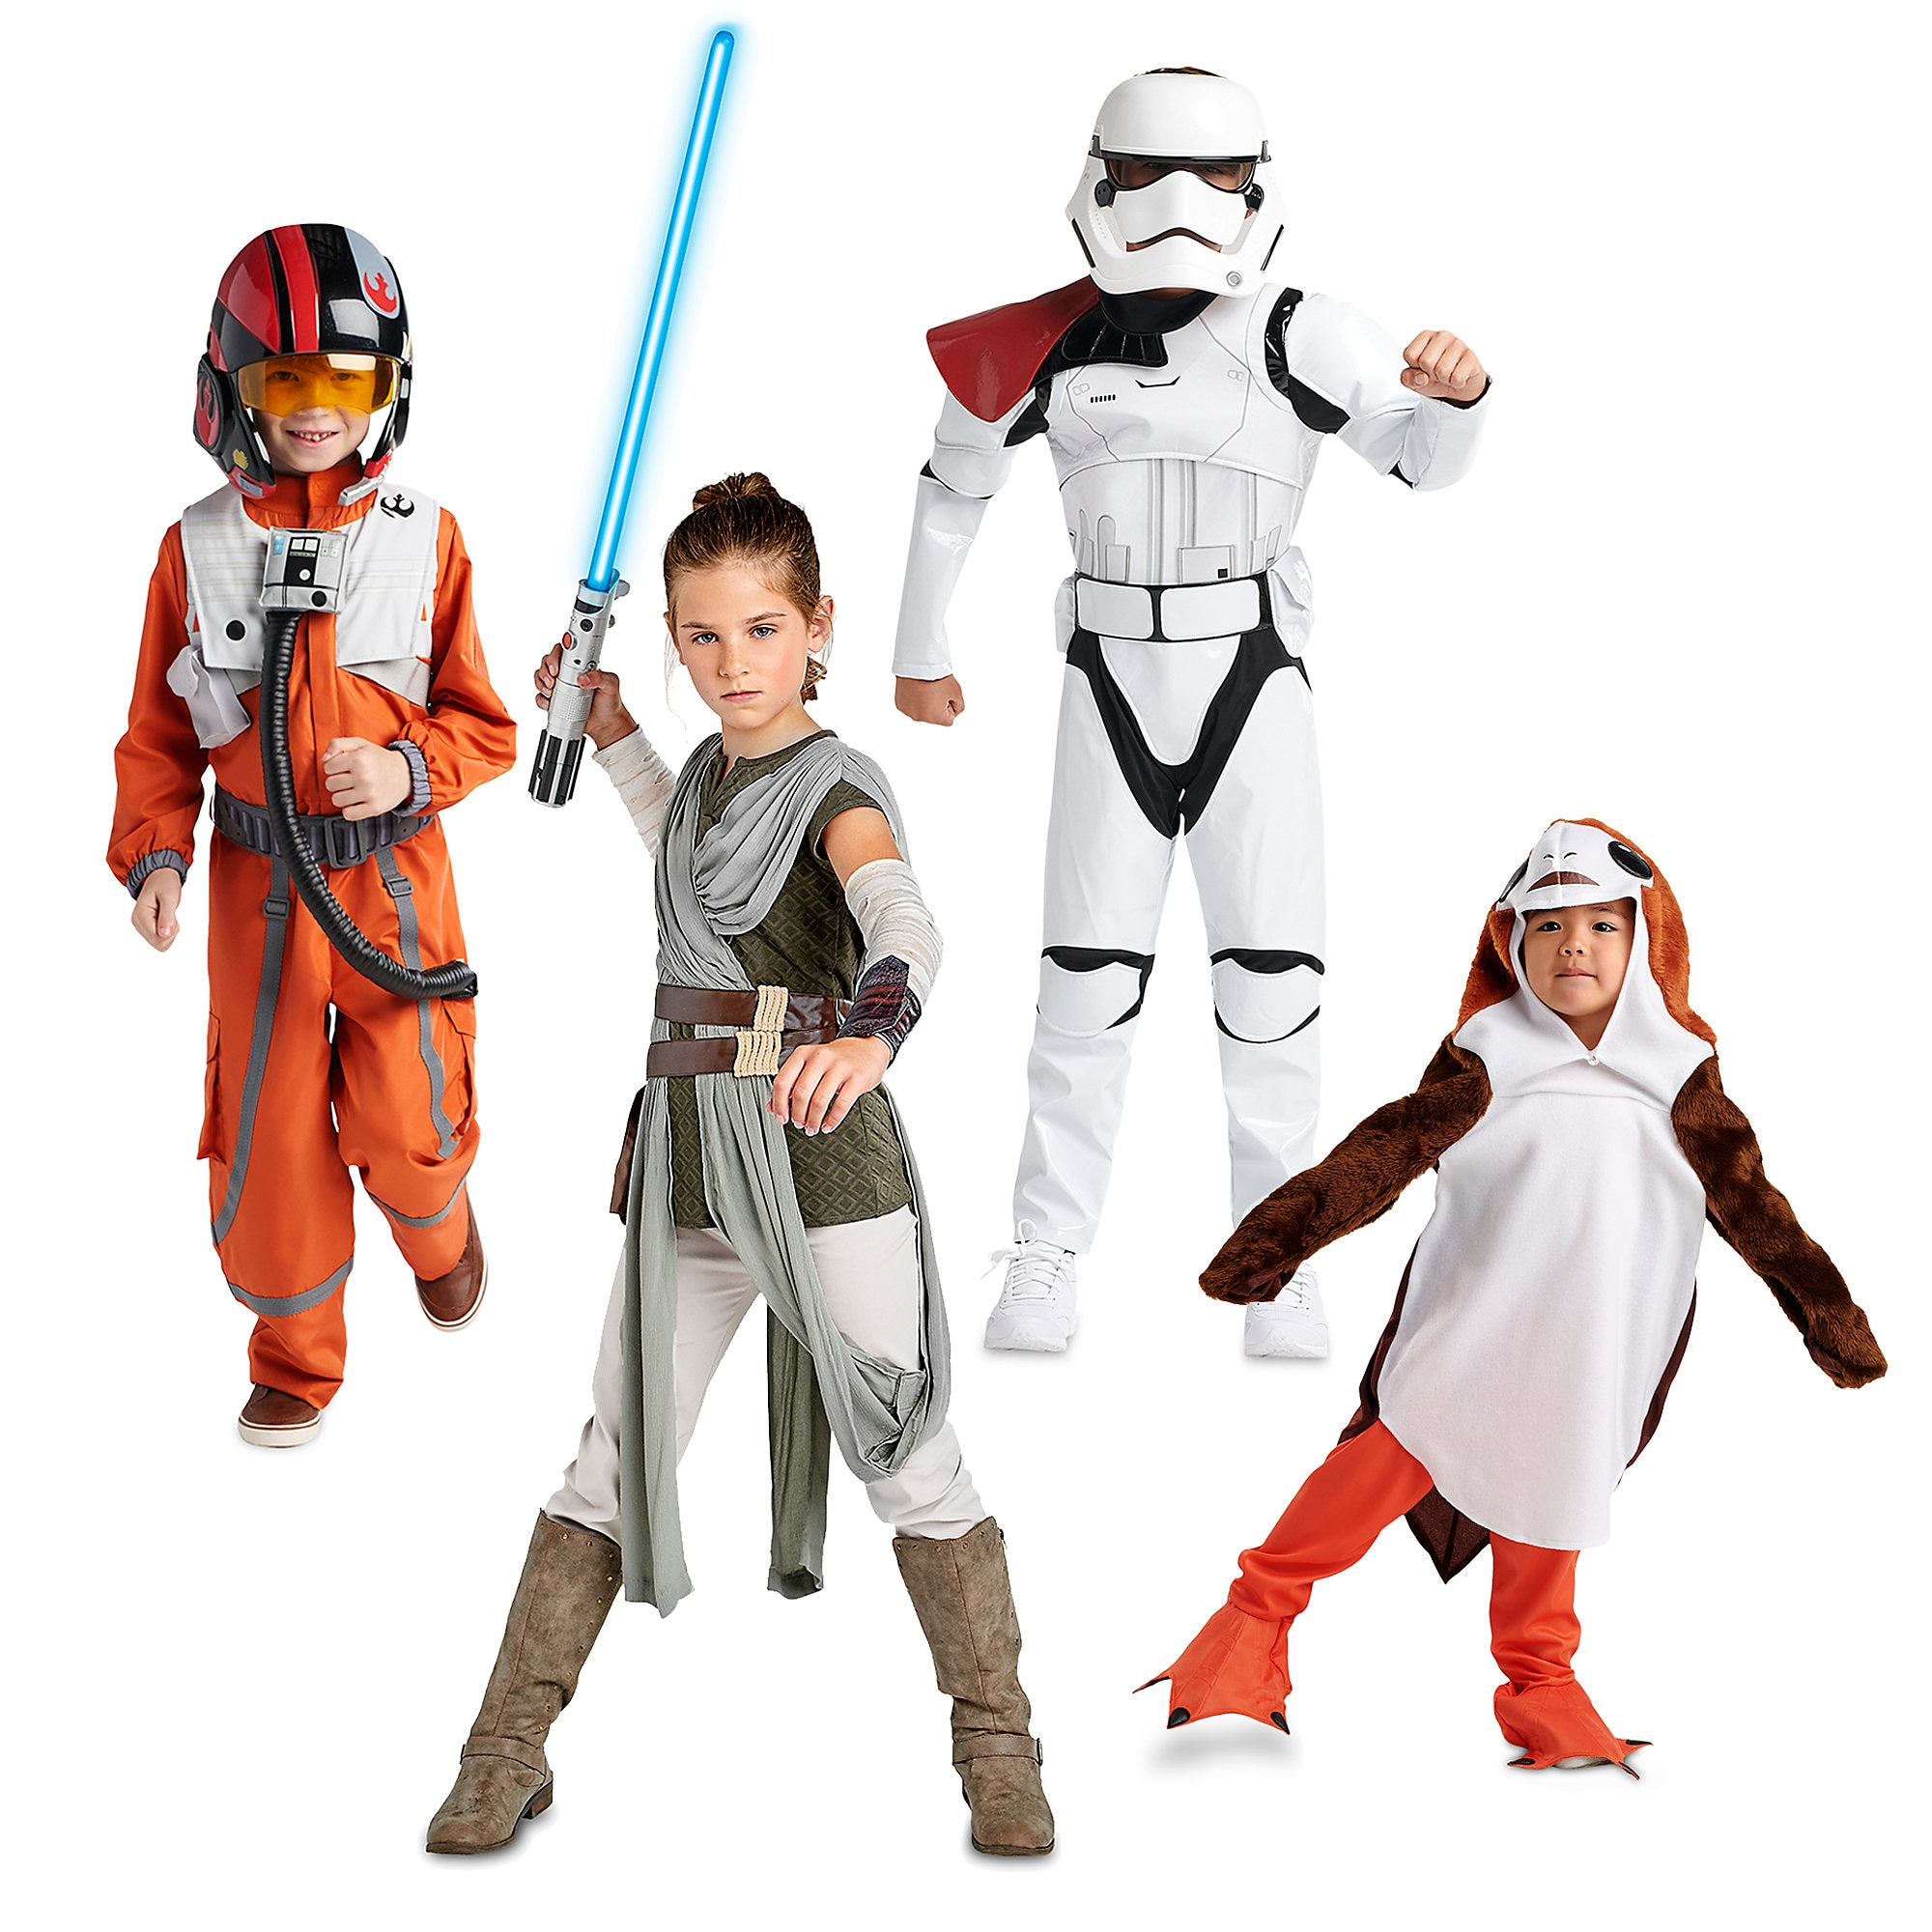 Star Wars: The Last Jedi Costume Collection for Family